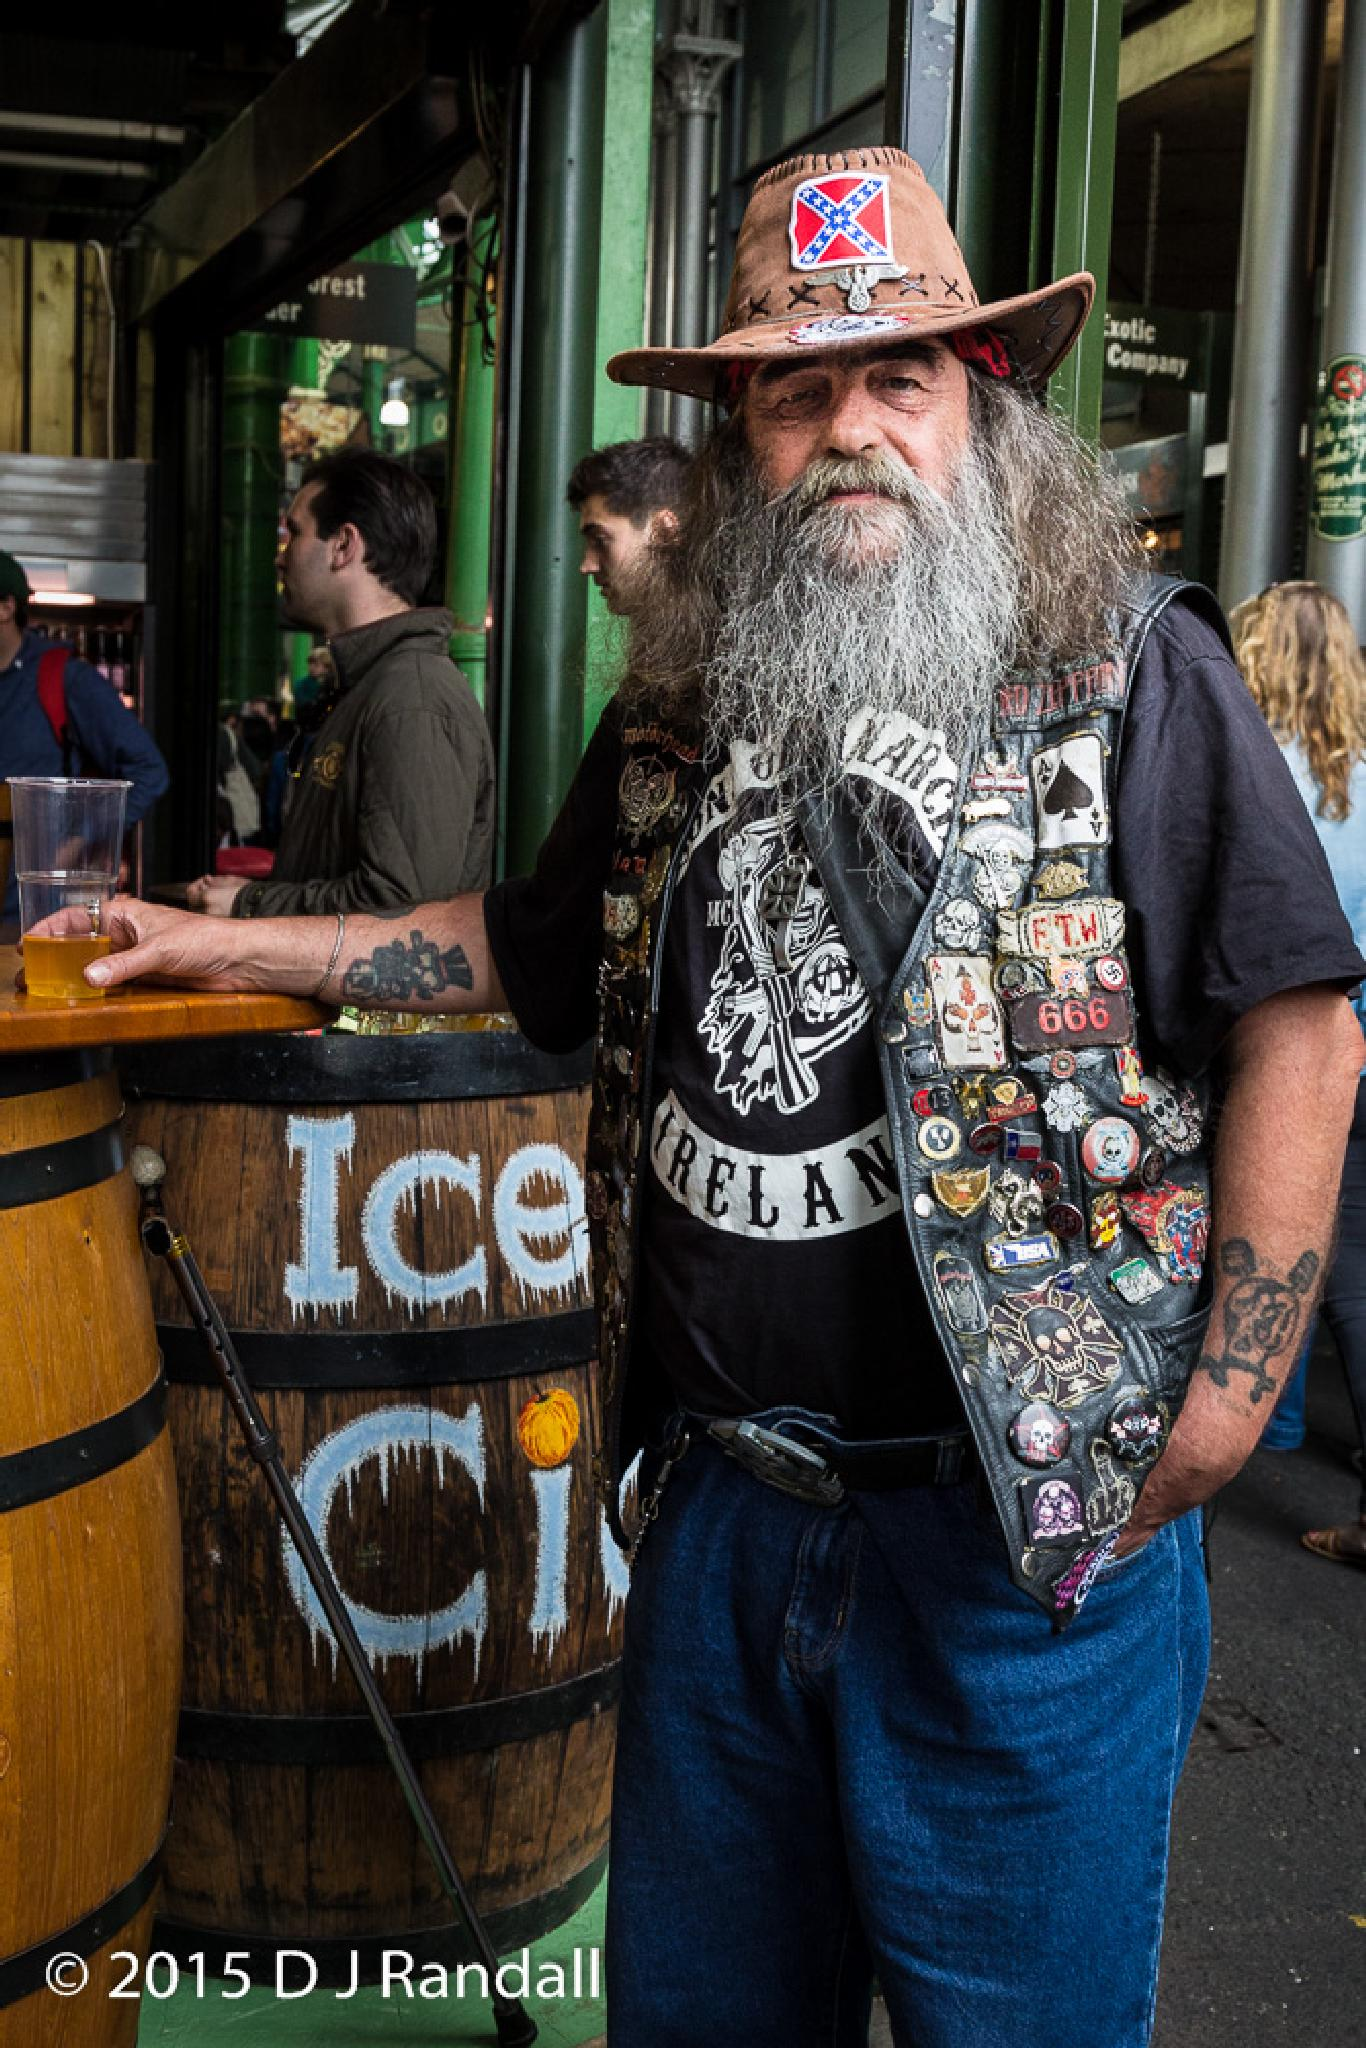 Drinker at a bar on the edge of London's Borough Market by Albatroff